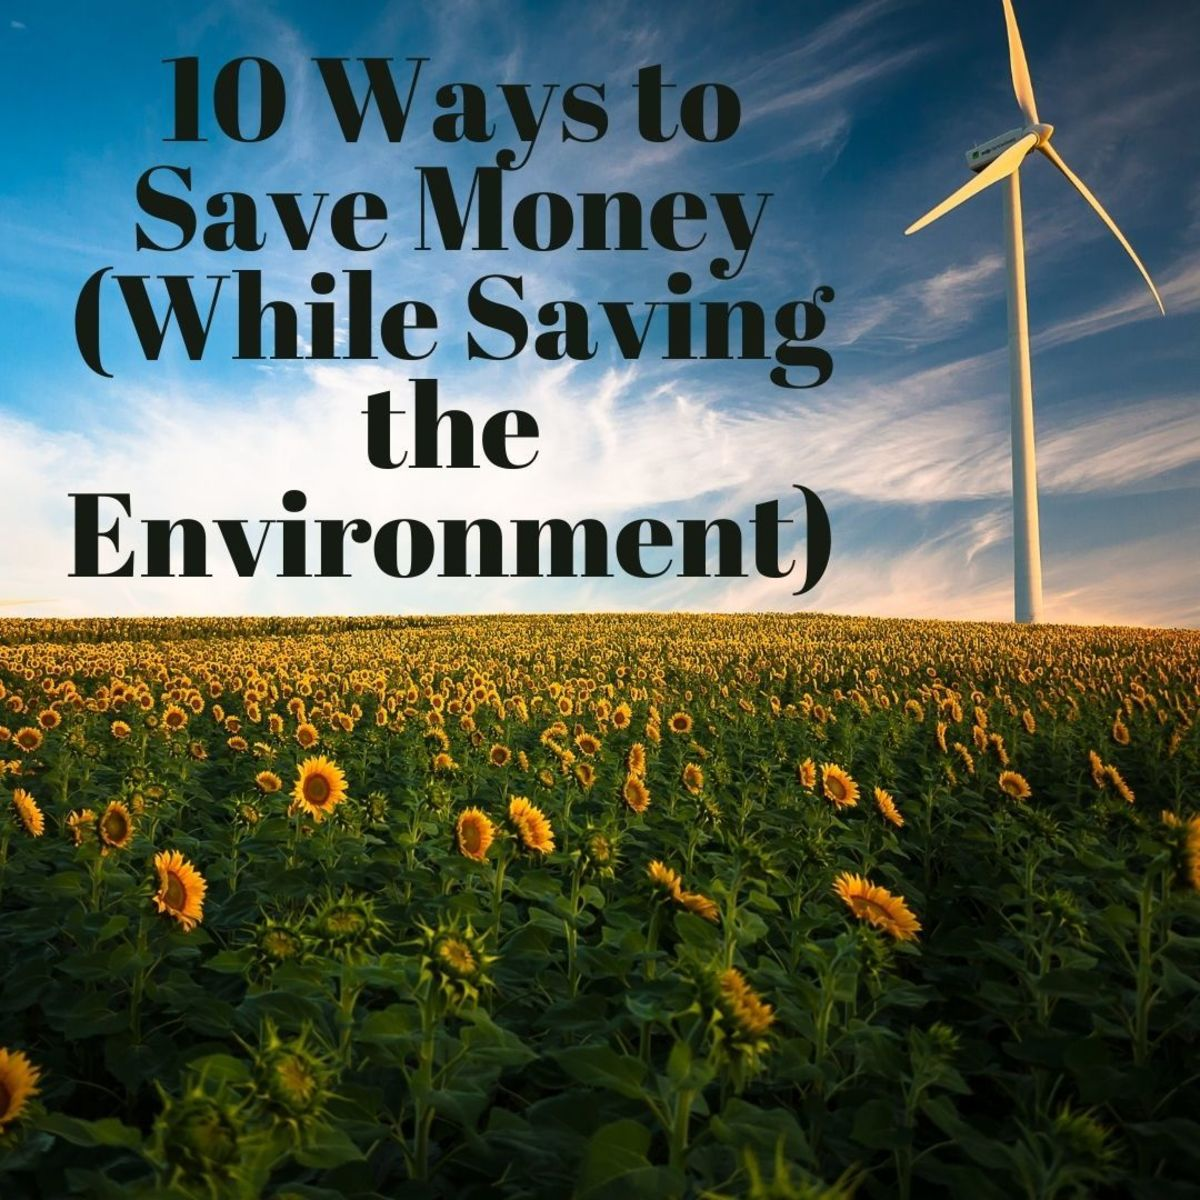 The principle of going green is adapting one's consciousness into a lifestyle of environmental conservation and sustainability.